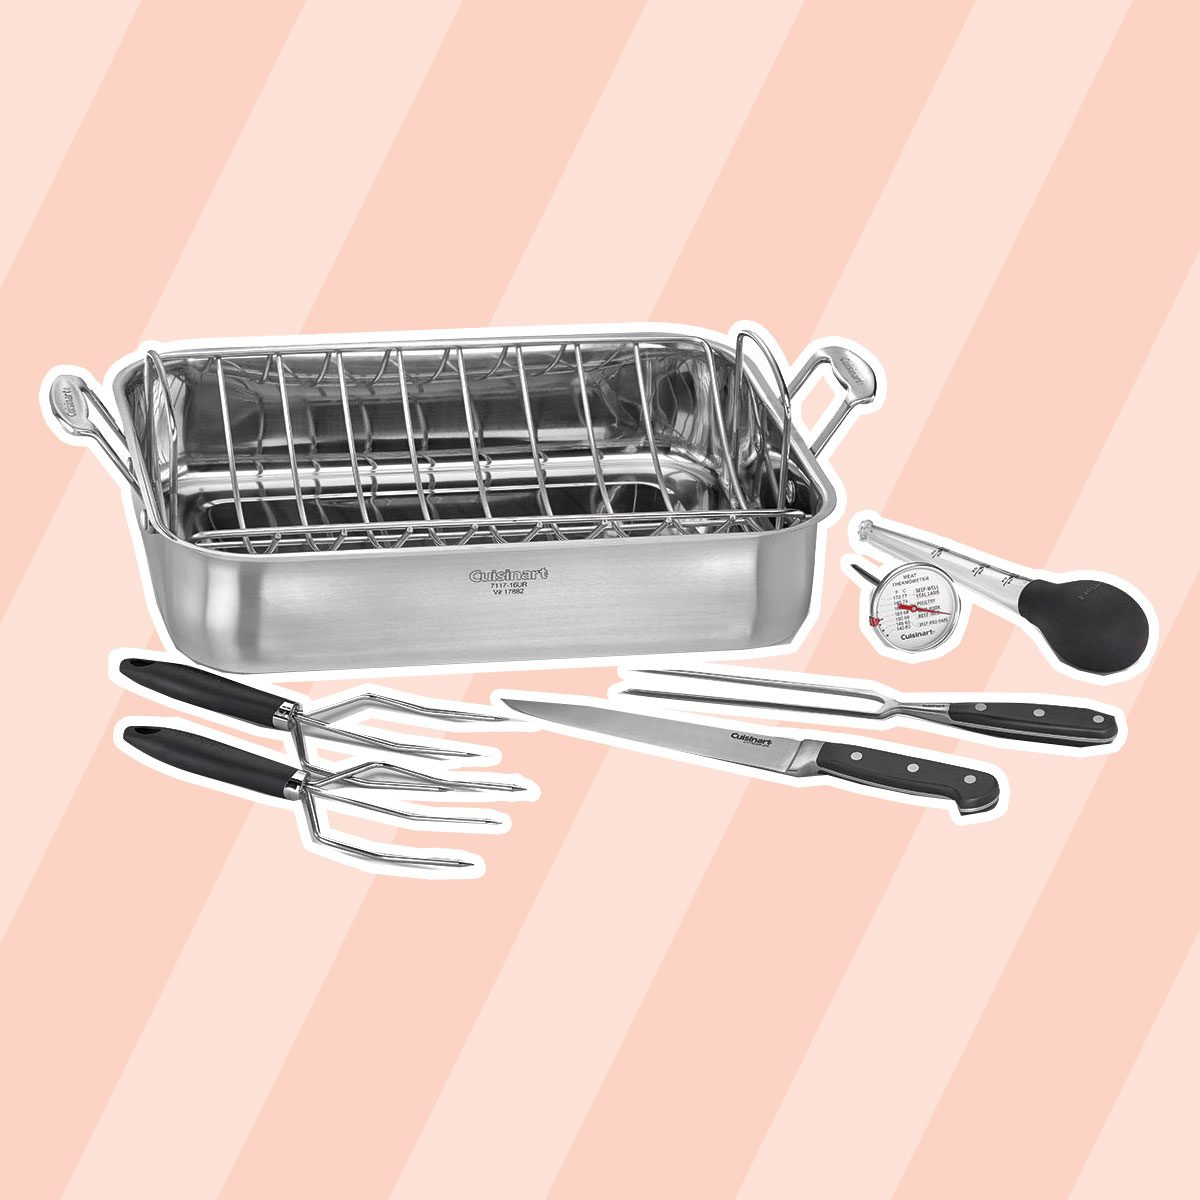 Cuisinart Chef's Classic Stainless Steel Roaster Pan